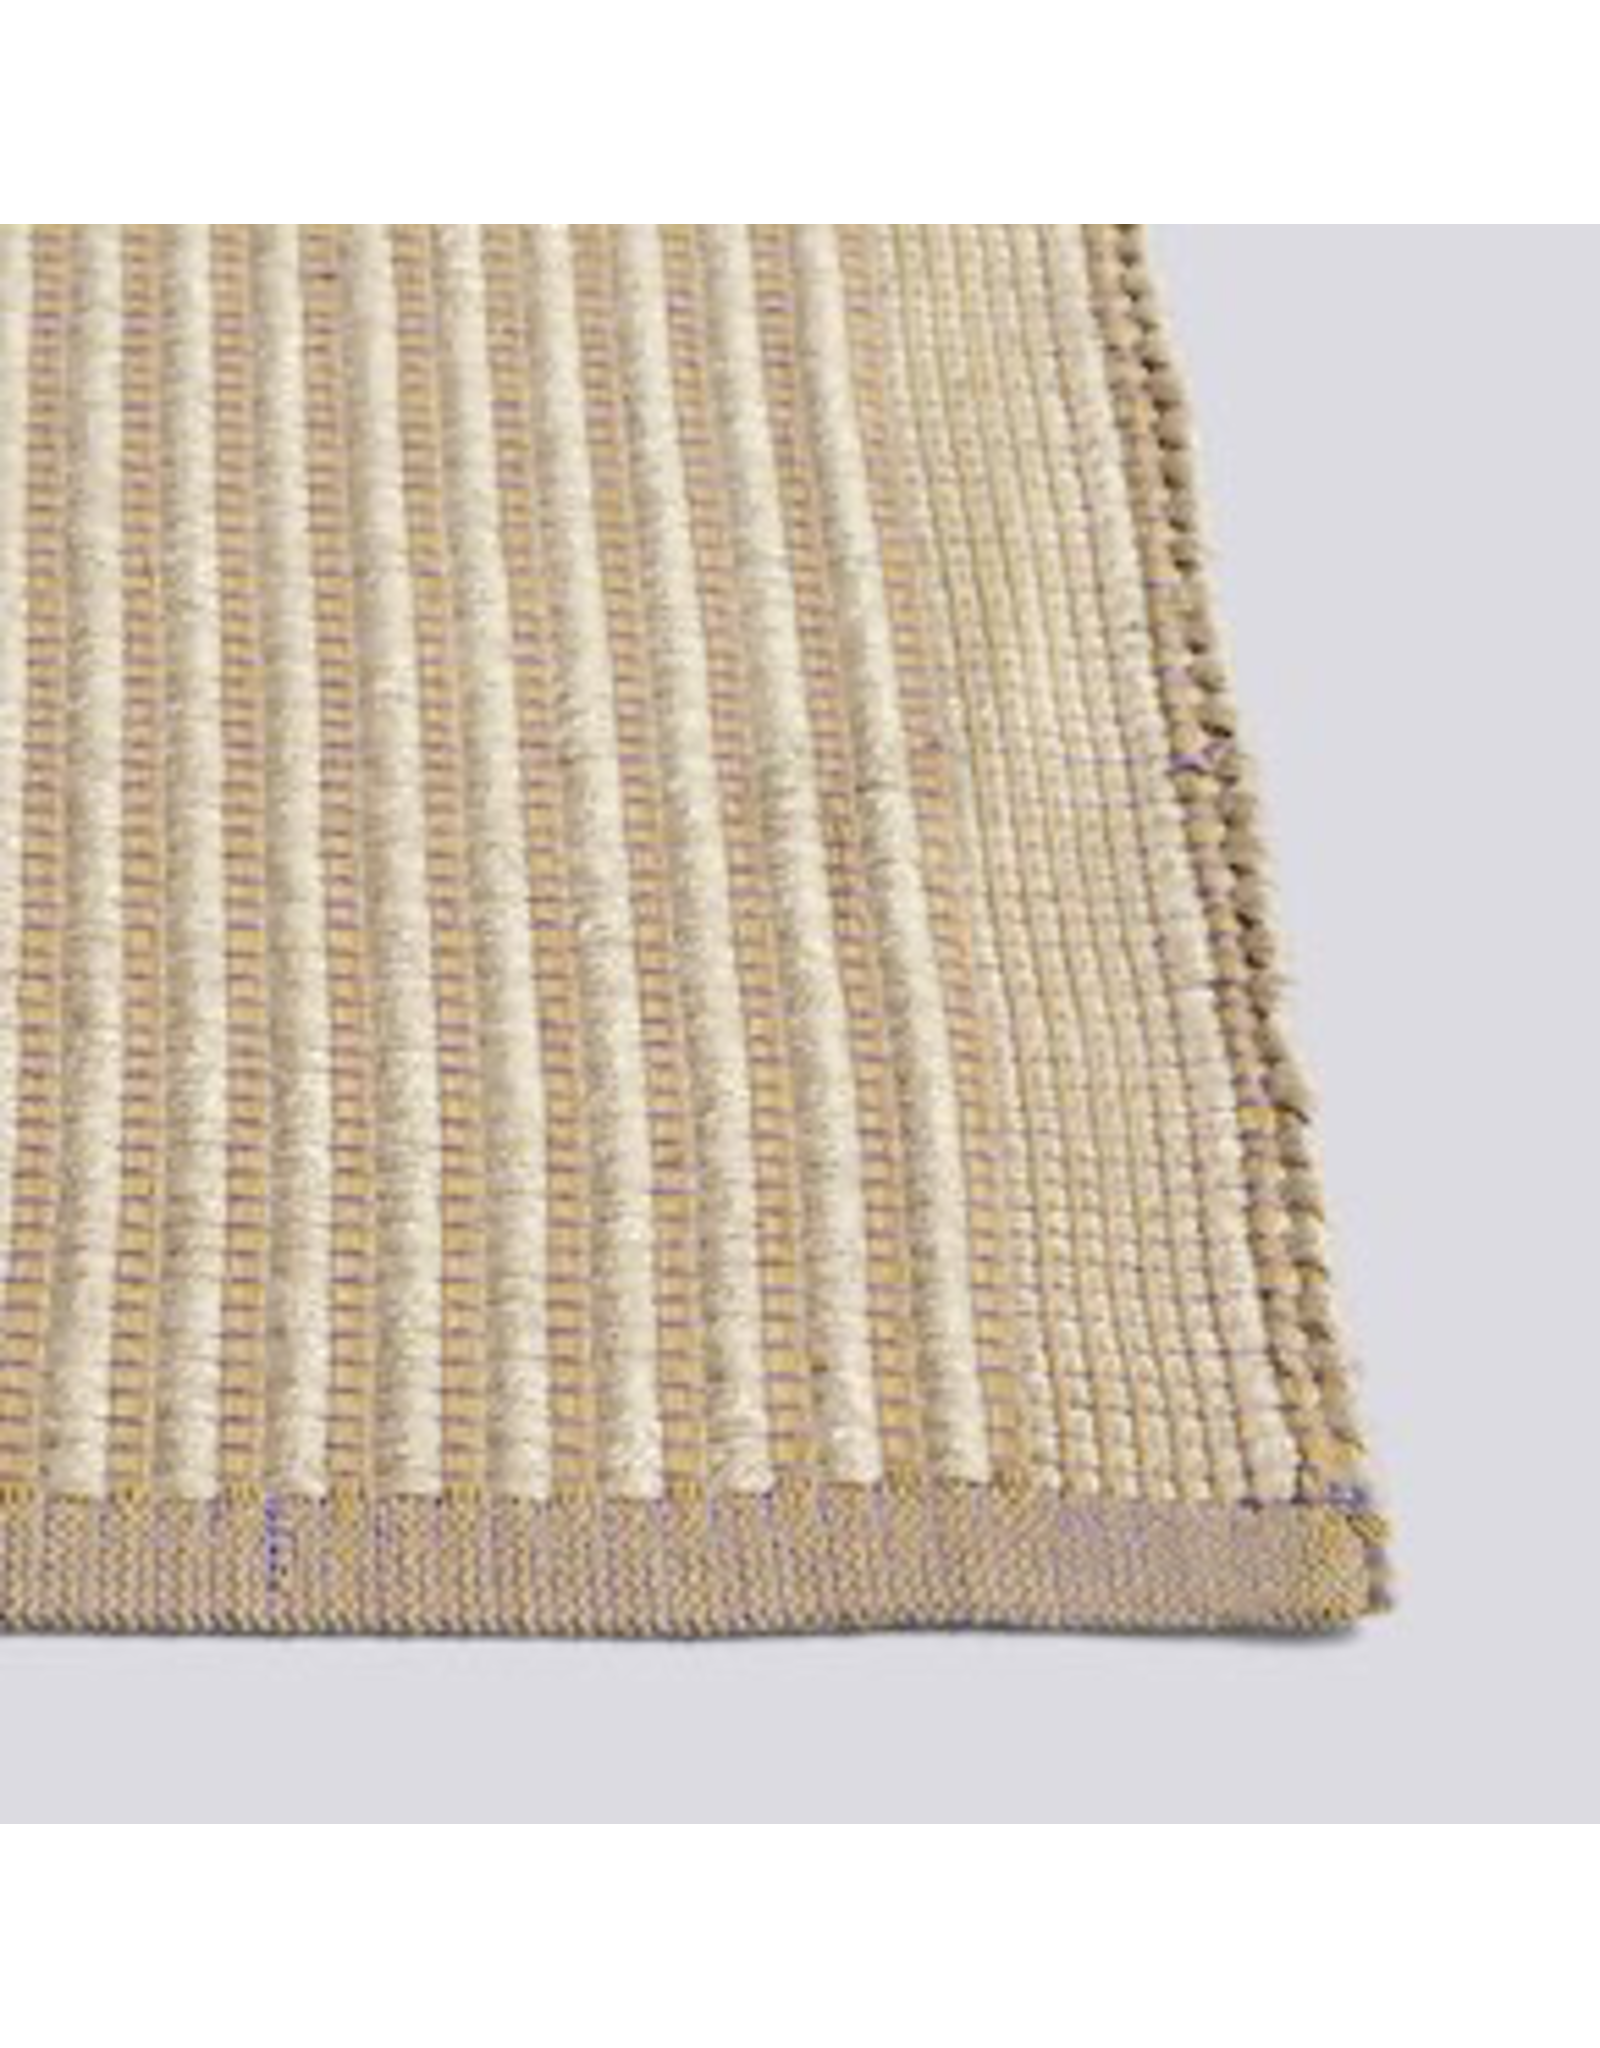 HAY Tapis / 170 X 240 / Off White and Lavender